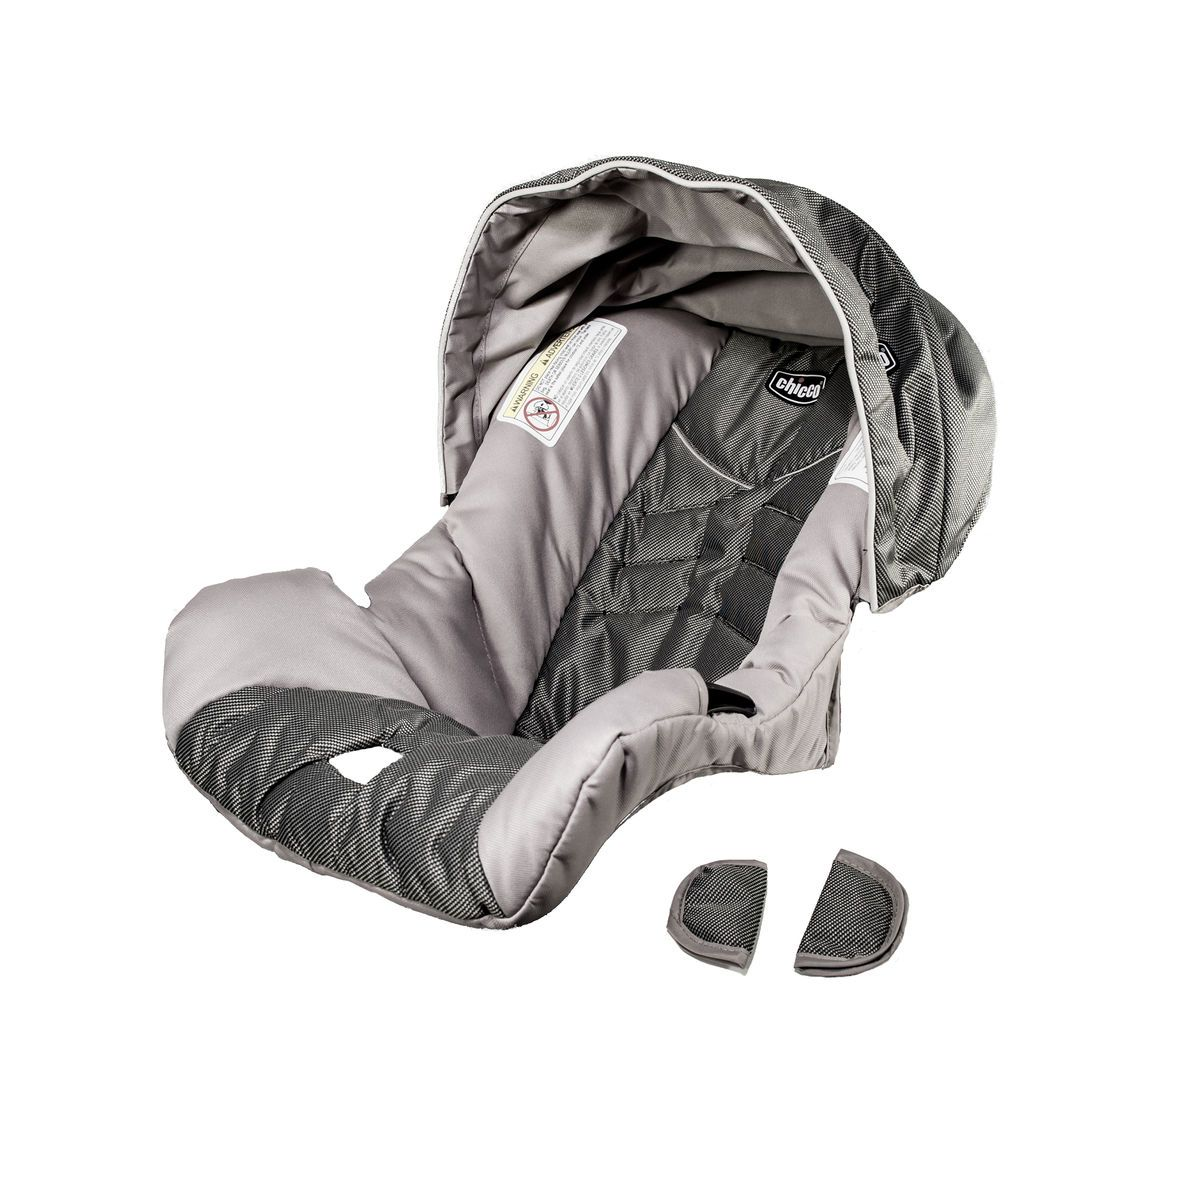 Chicco Keyfit 30 Seat Cover, Canopy and Pads Car seat